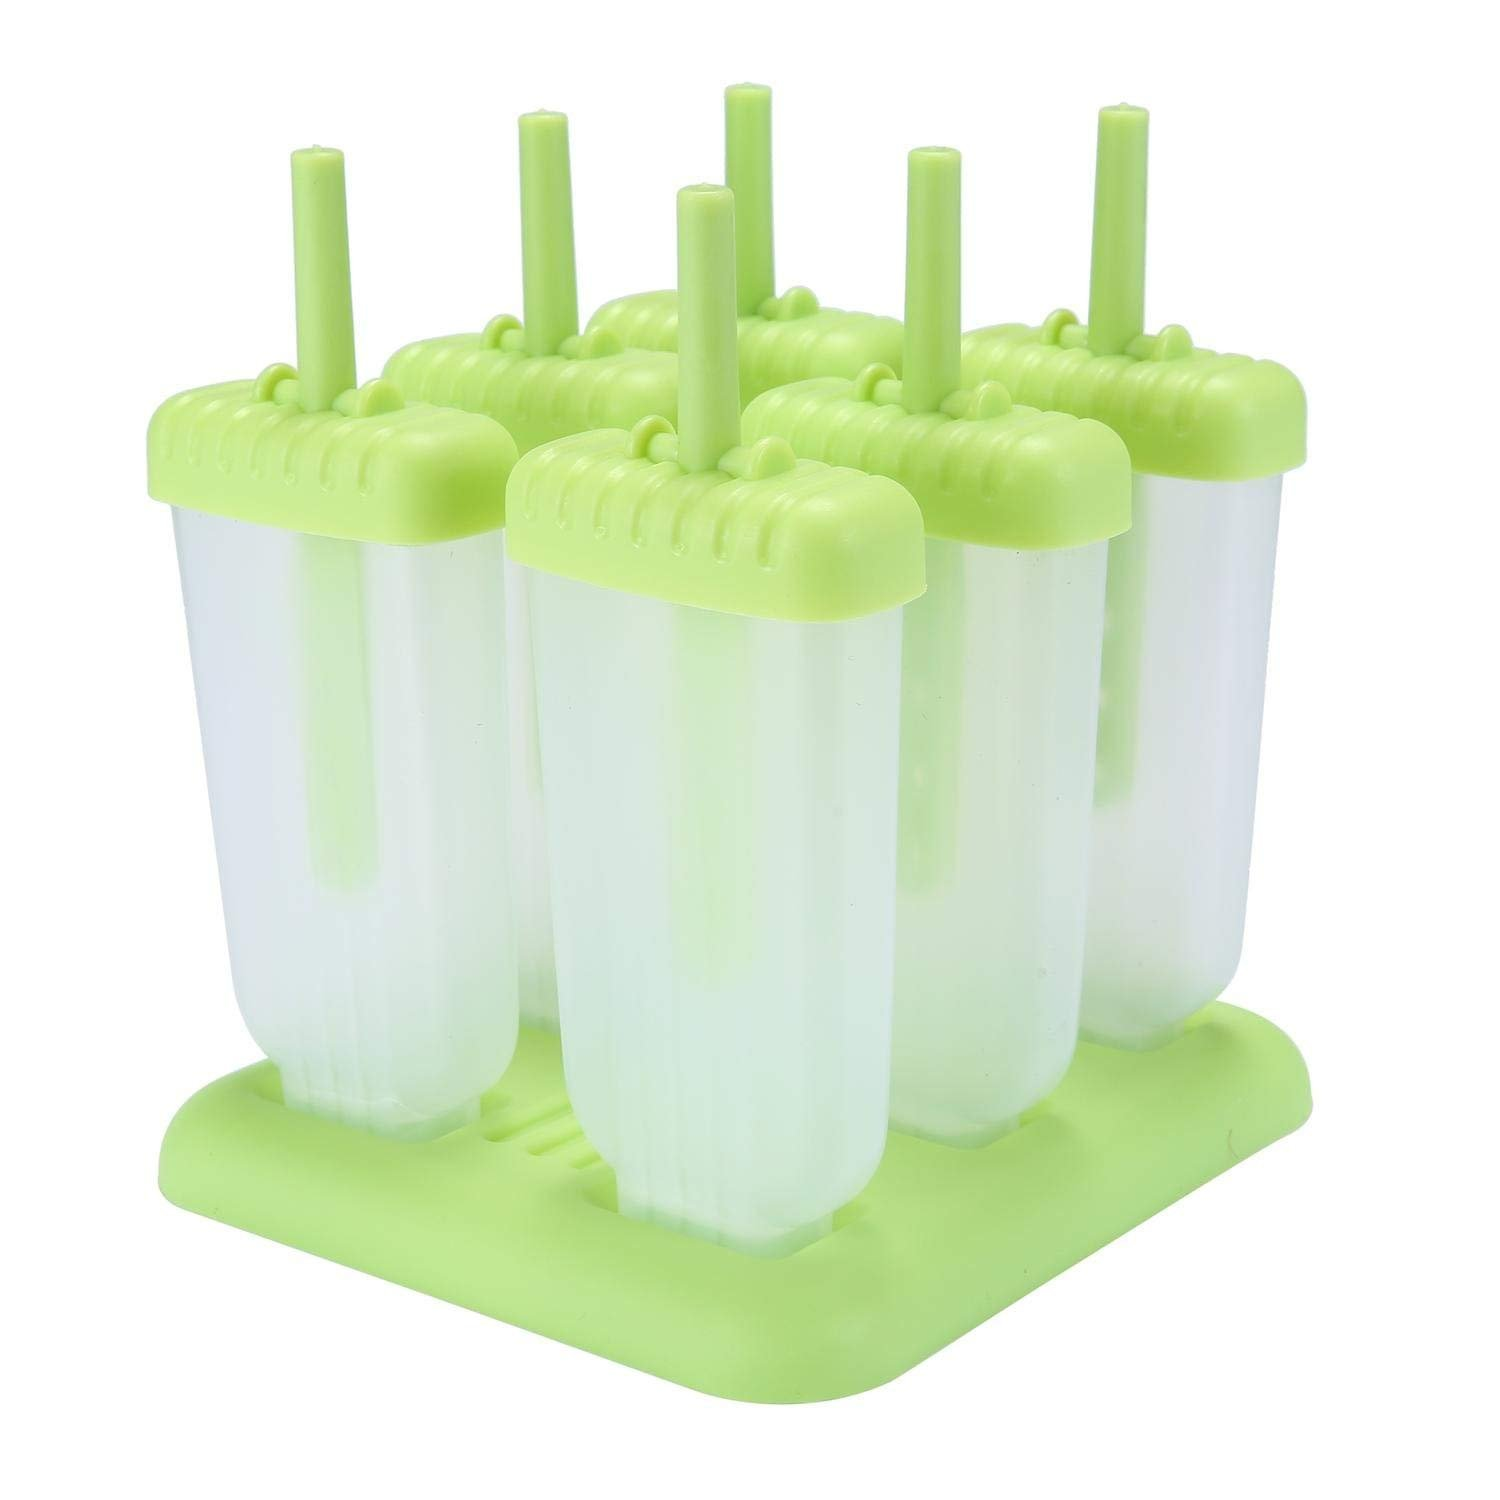 DIY Ice Cream Popsicle Mould Silicone Tray Lolly Mould Frozen Ice Cream Molds